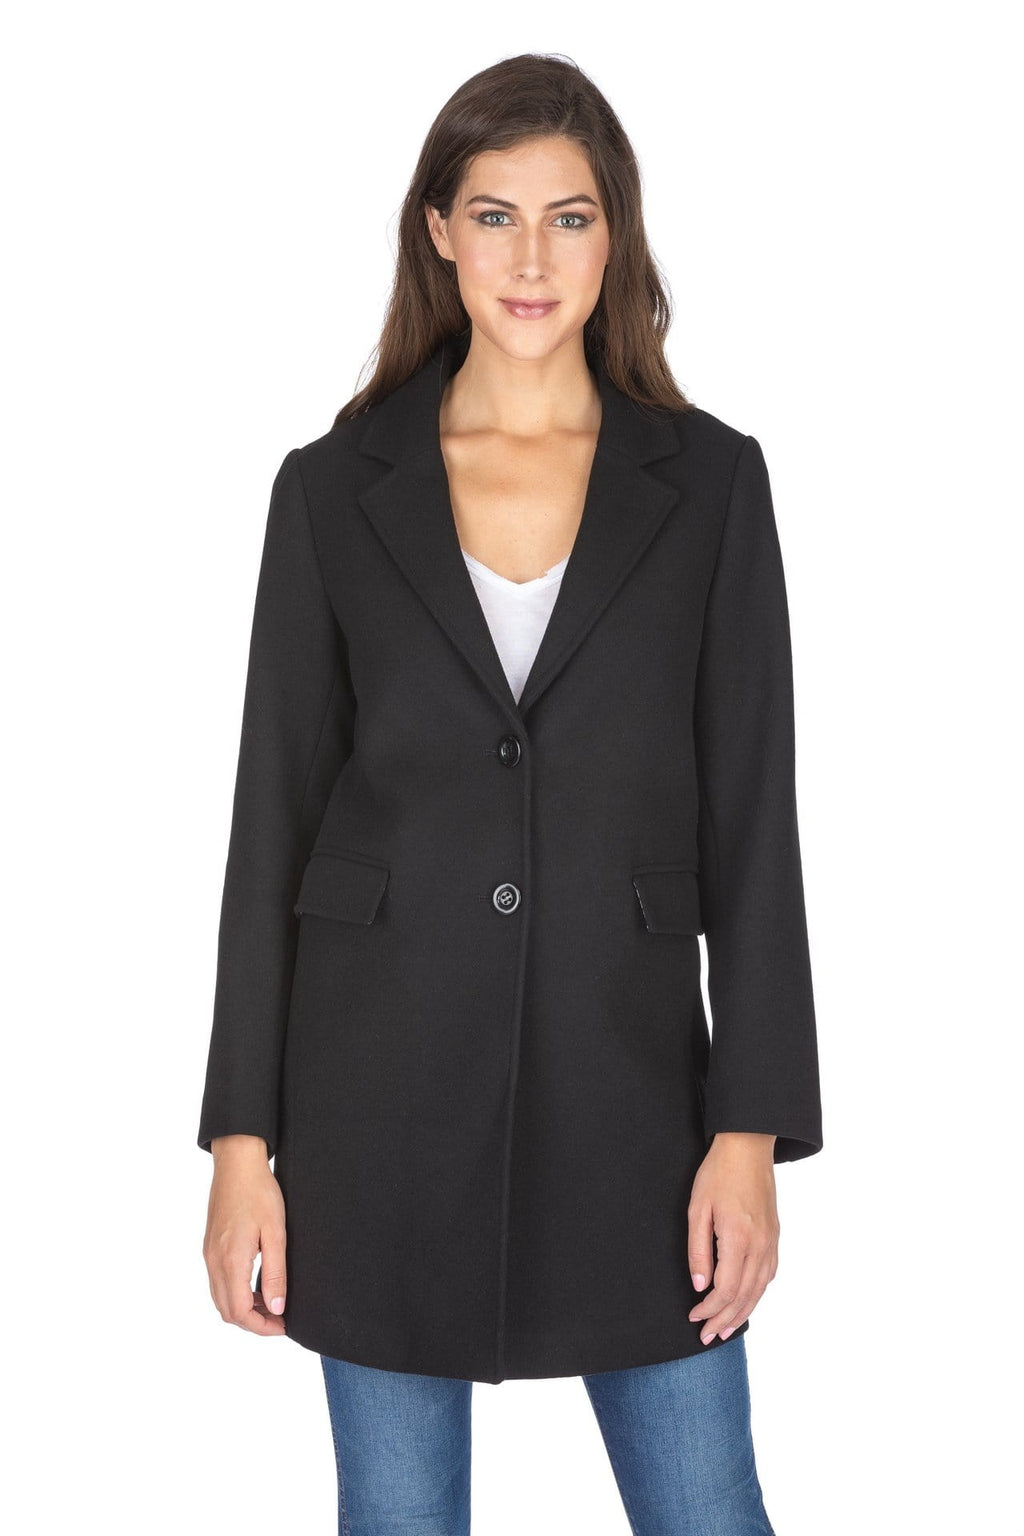 DAILYHAUTE Women's coats BLACK / SMALL Haute Edition Women's Wool Blend Single Breasted Coat